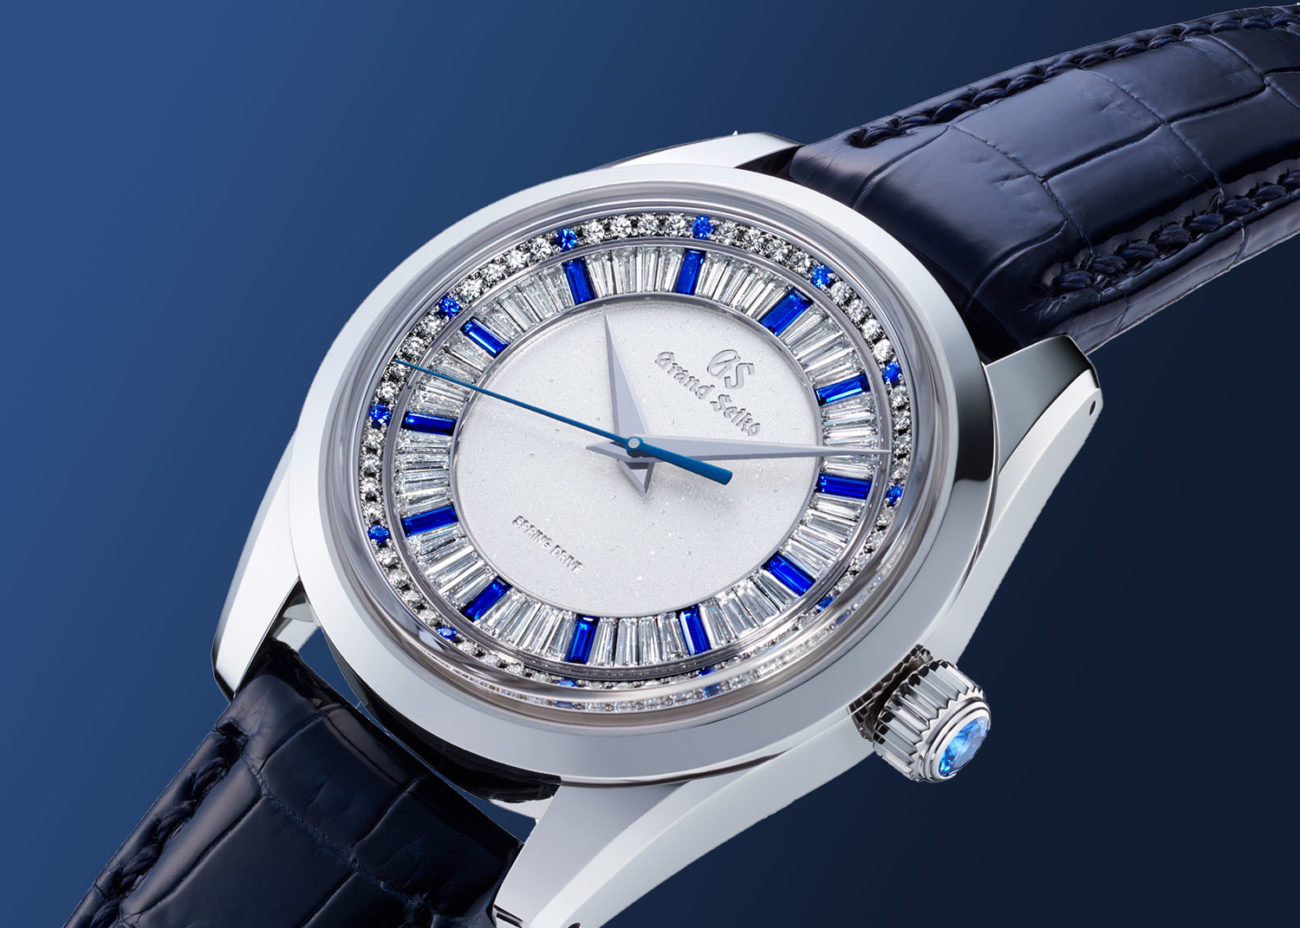 Grand Seiko Masterpiece Collection Spring Drive 8 Days Jewelry Watch SBGD205